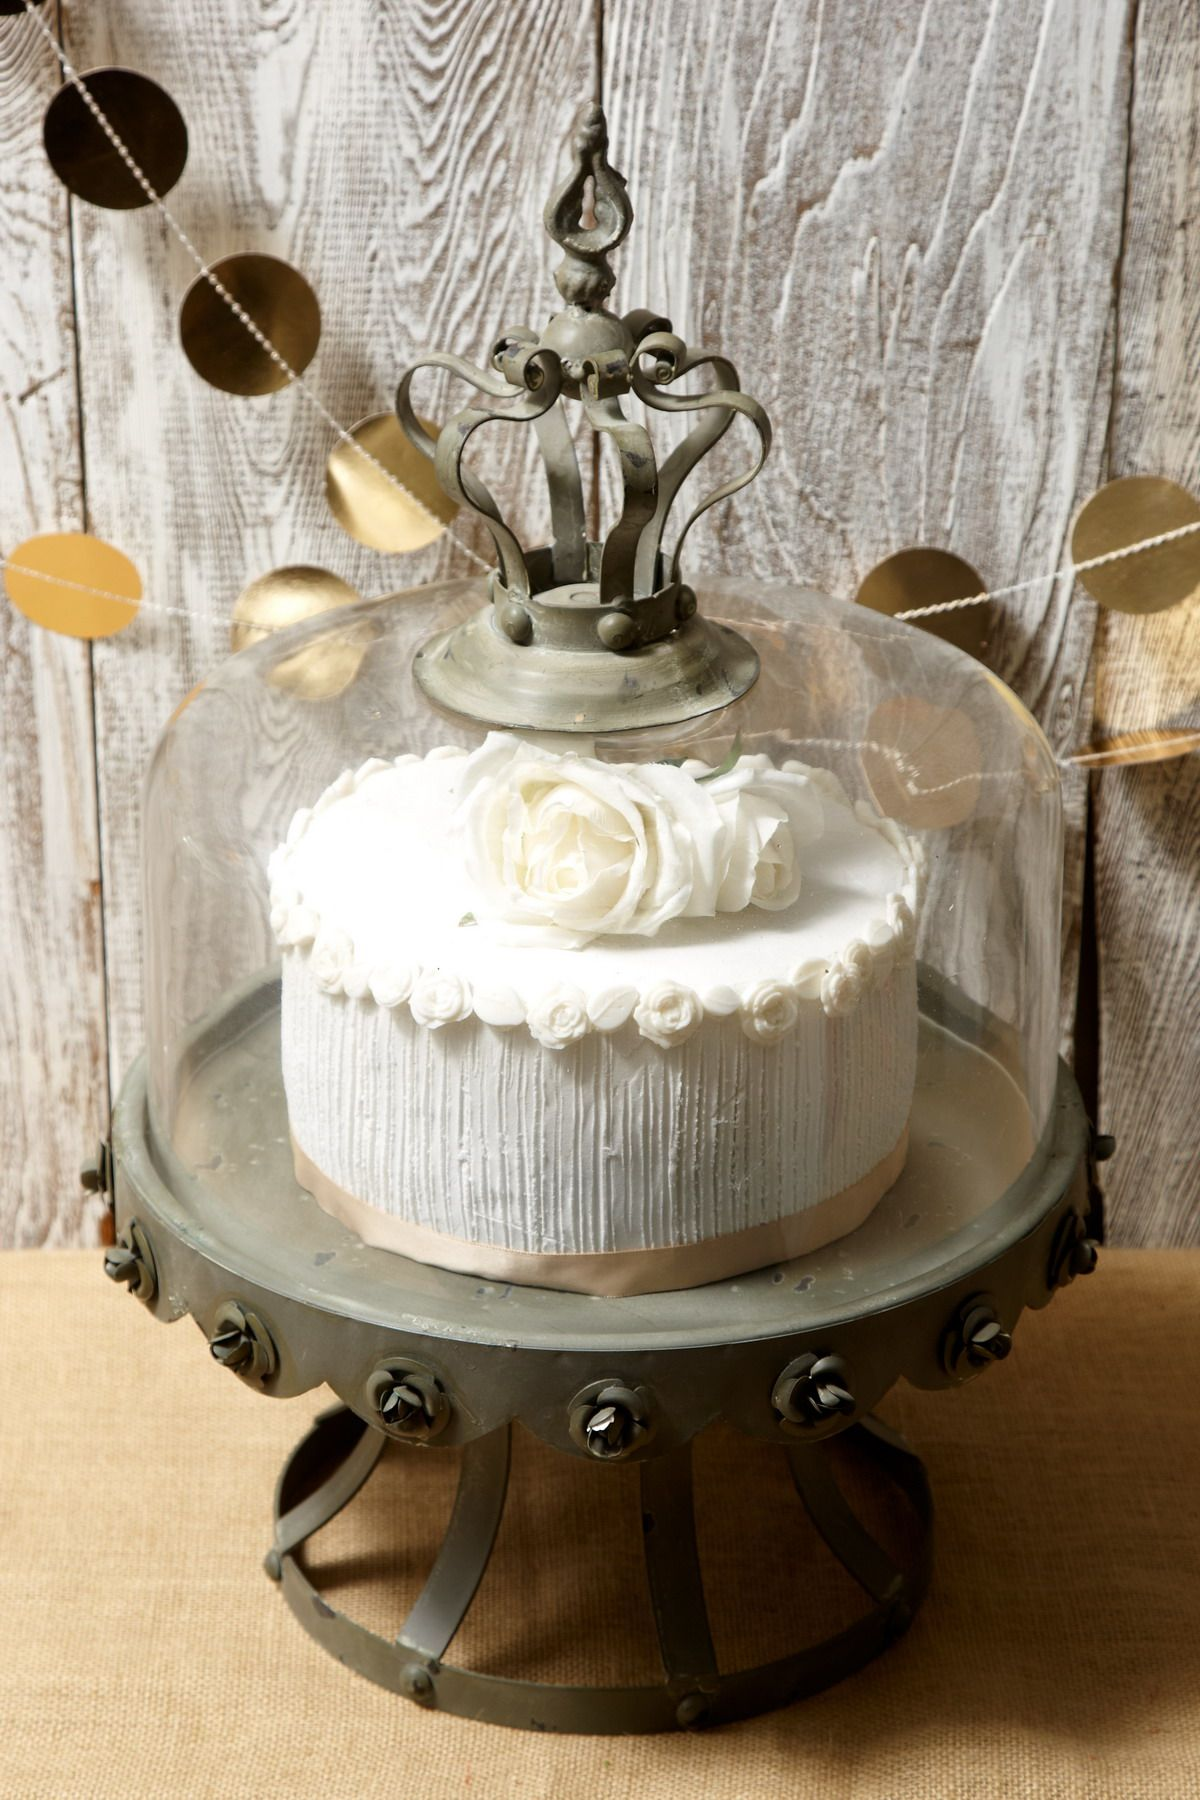 cake dome cakes awesome stand ideas pedestal with design cupcake timeless pioneer mini beauty woman the